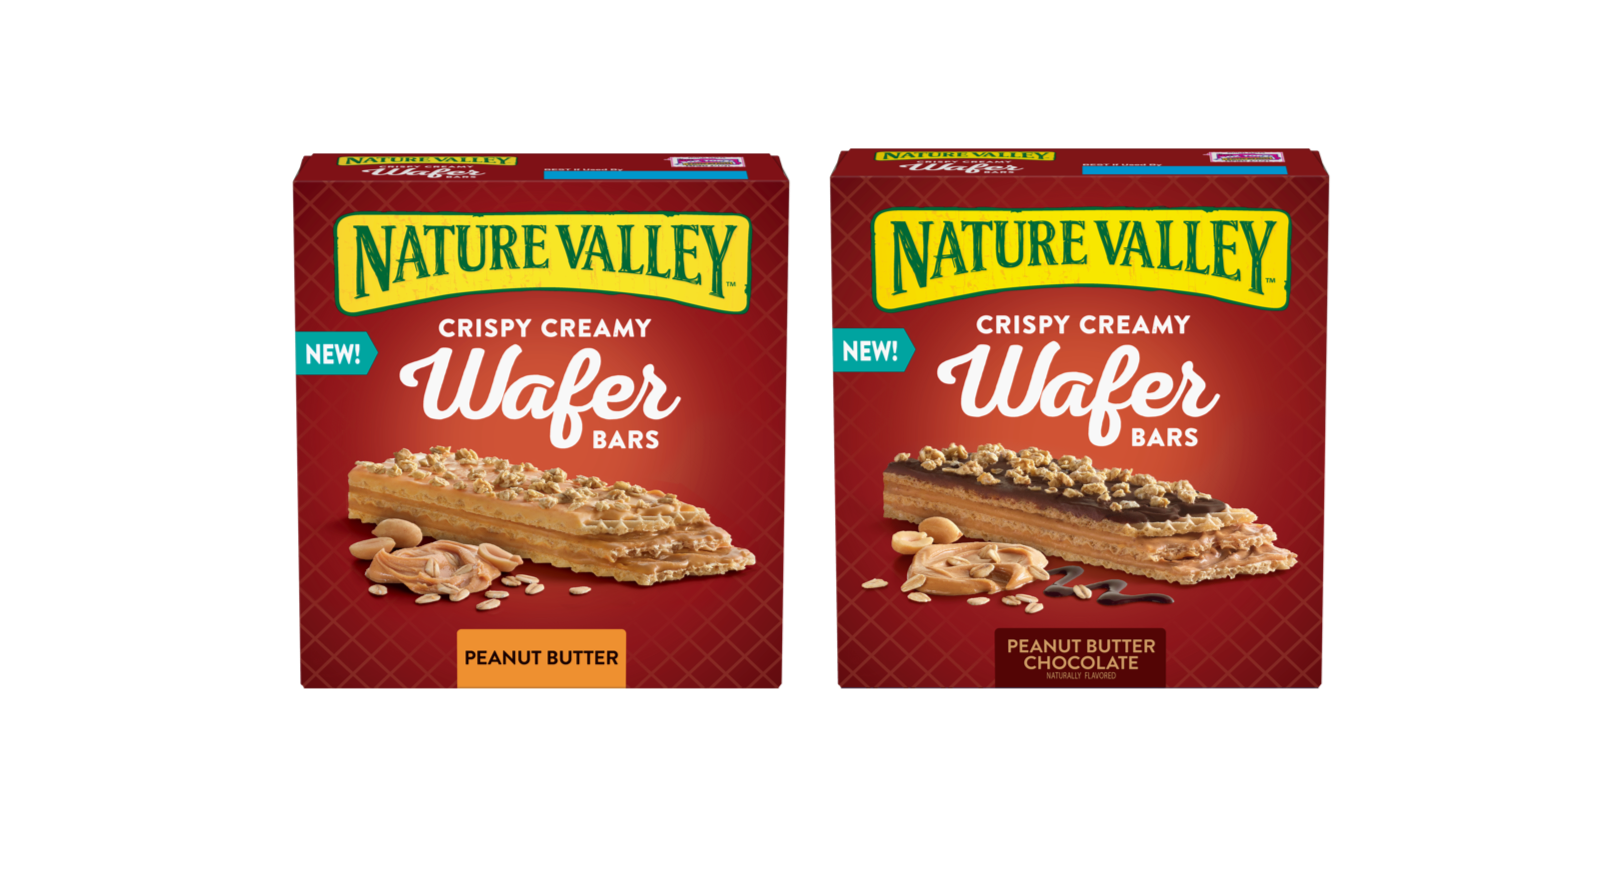 *HOT* FREE Nature Valley Wafers (possible freebie from